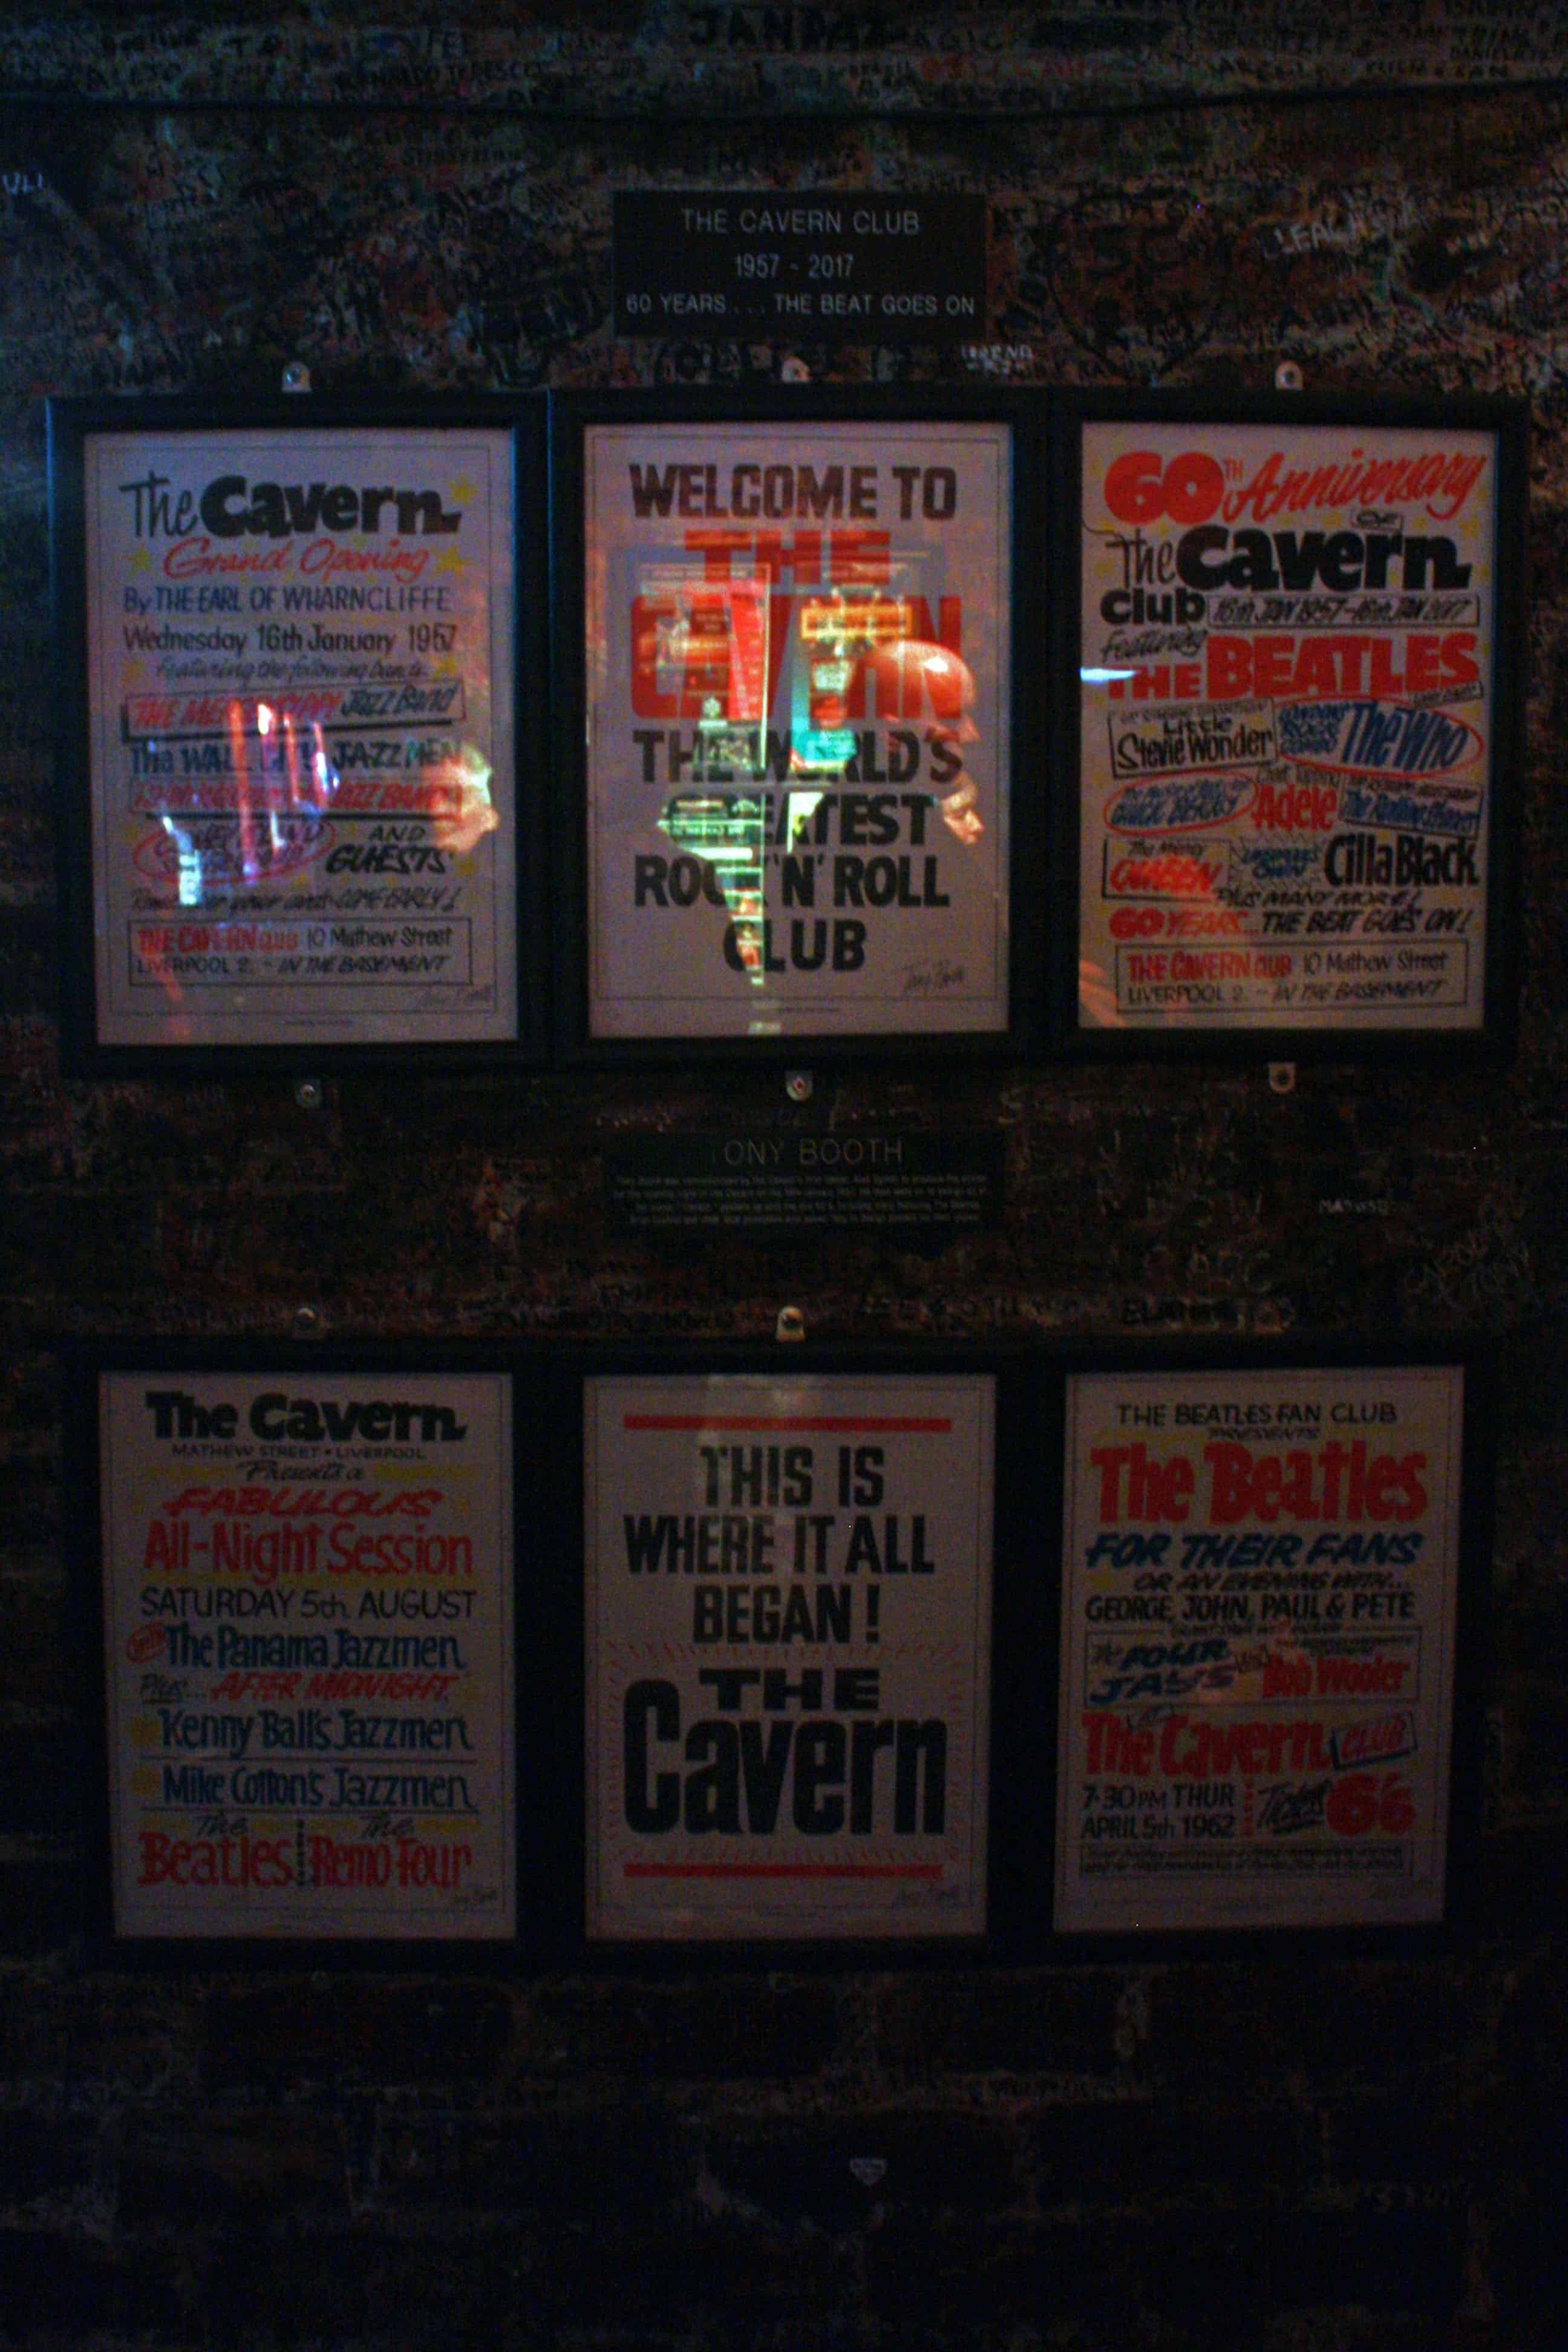 The Cavern Club posters